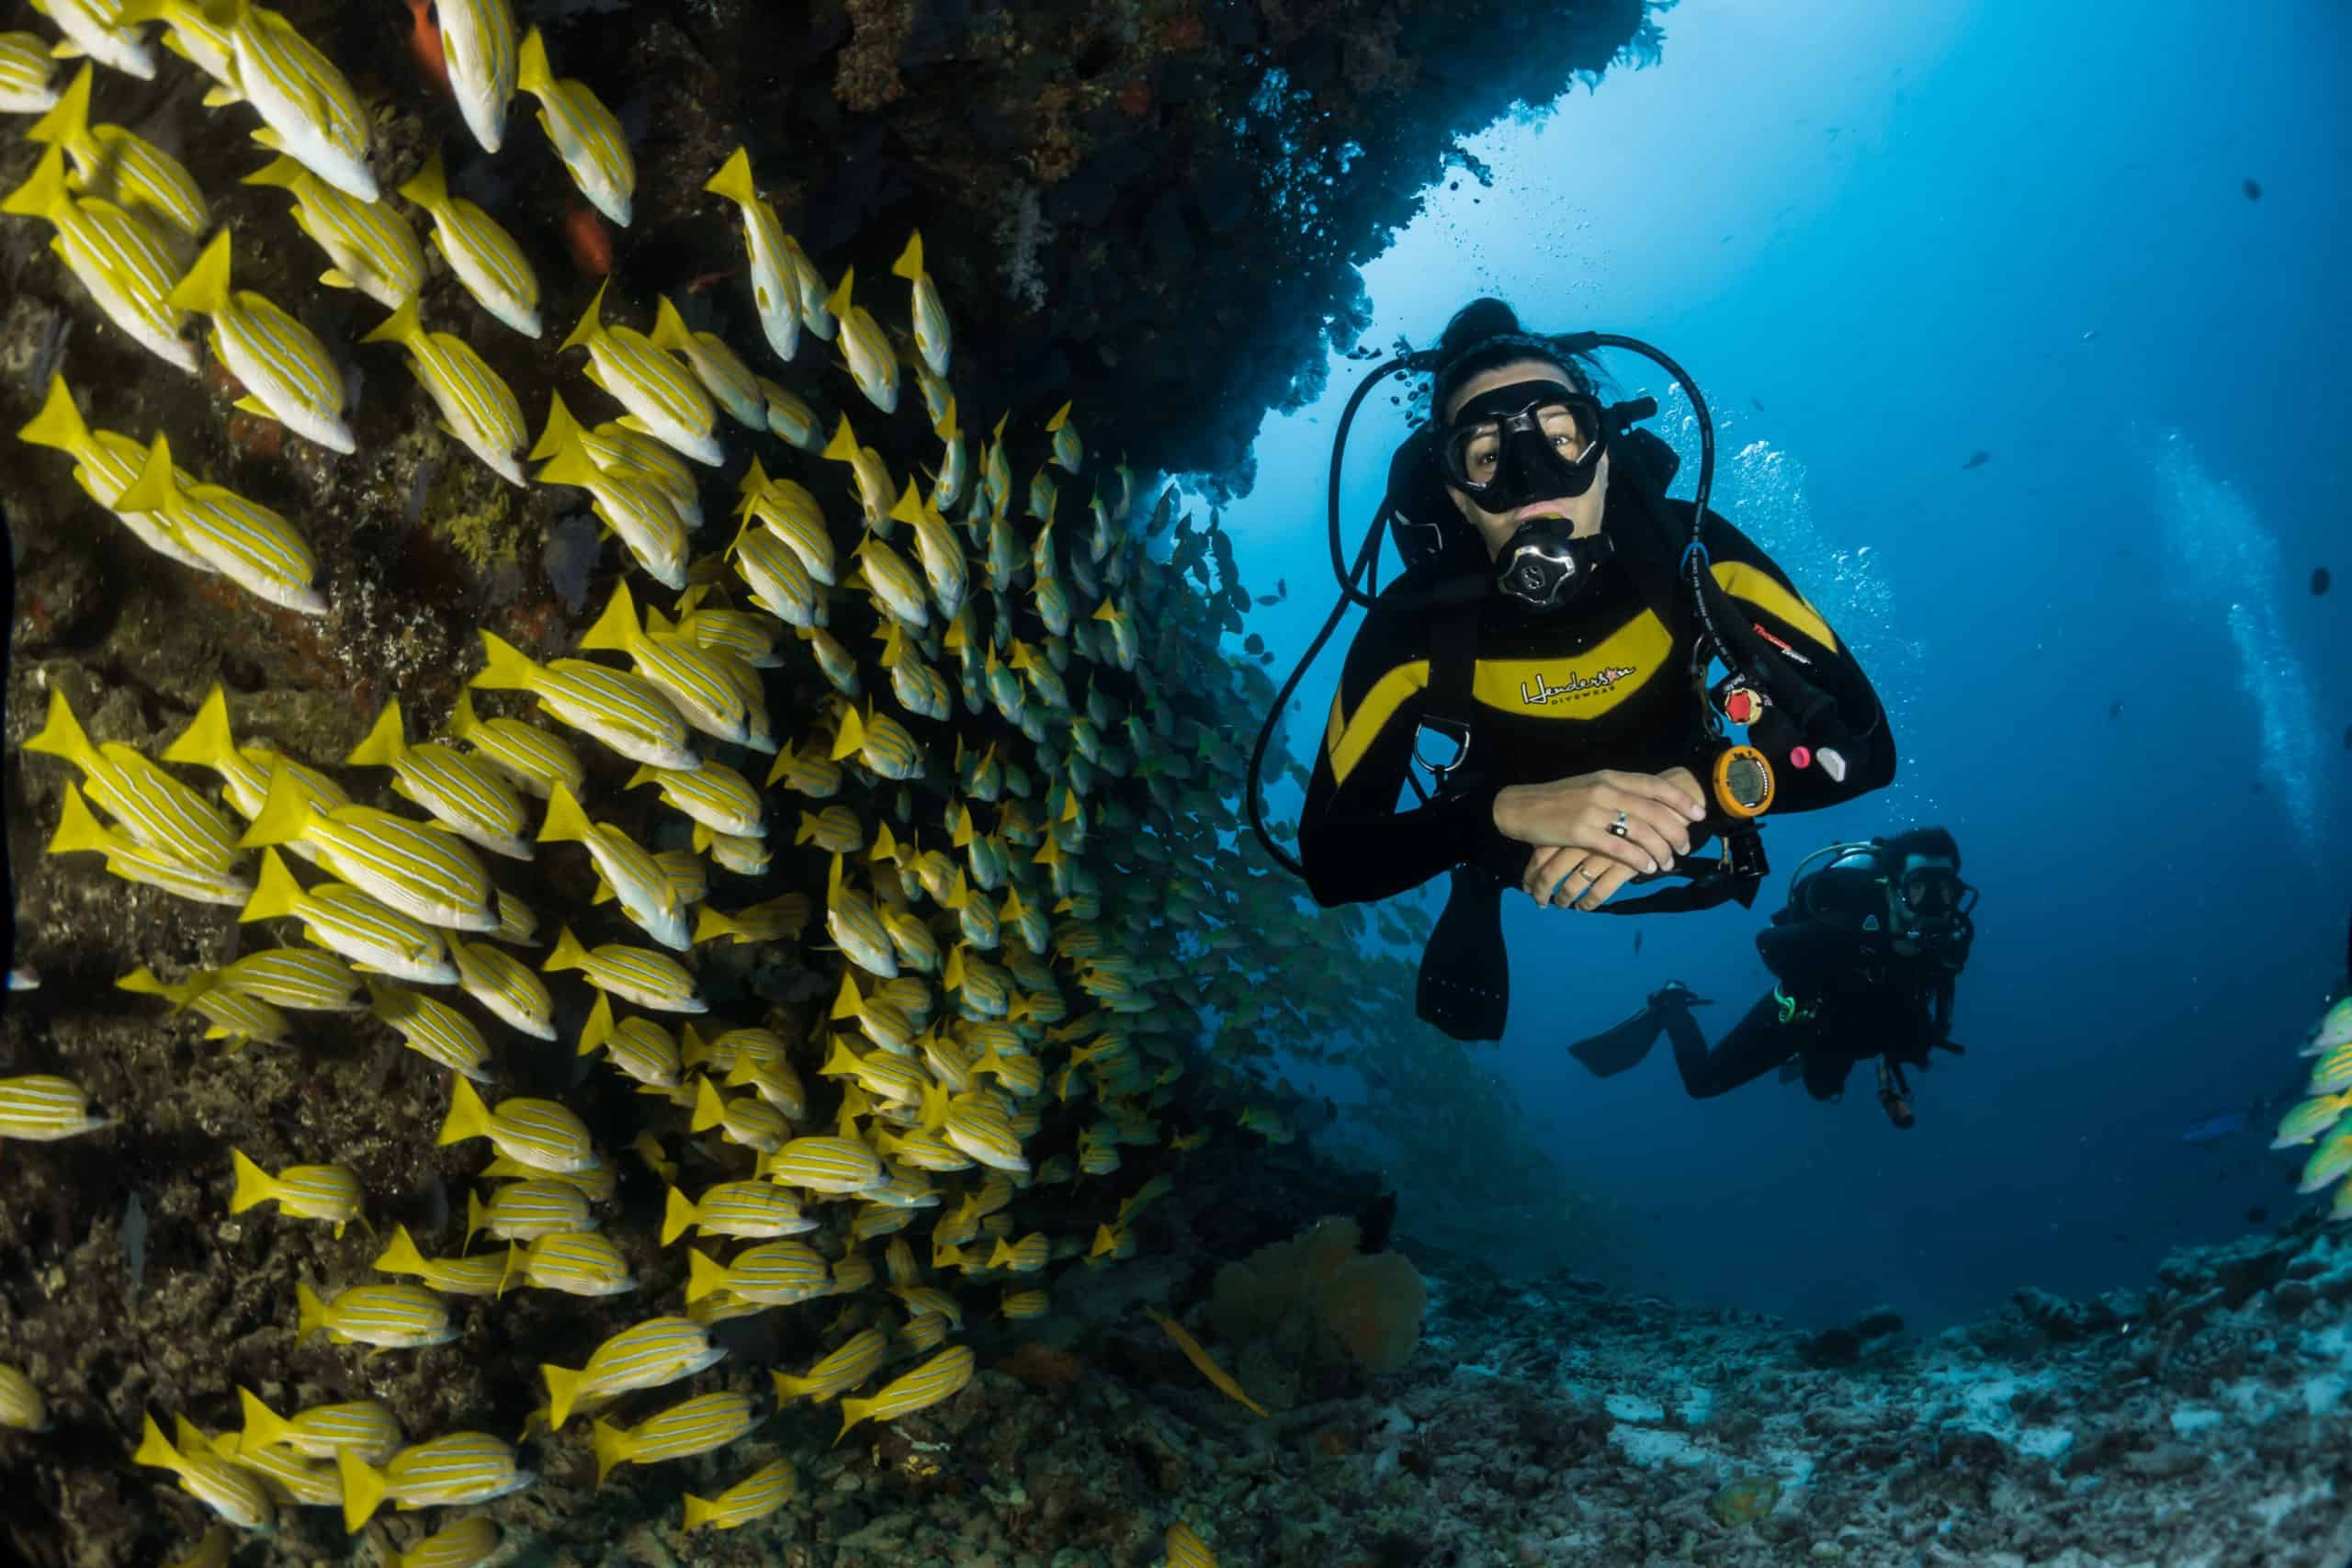 Scuba Diving Equipment For Beginner: Buying Your First Set